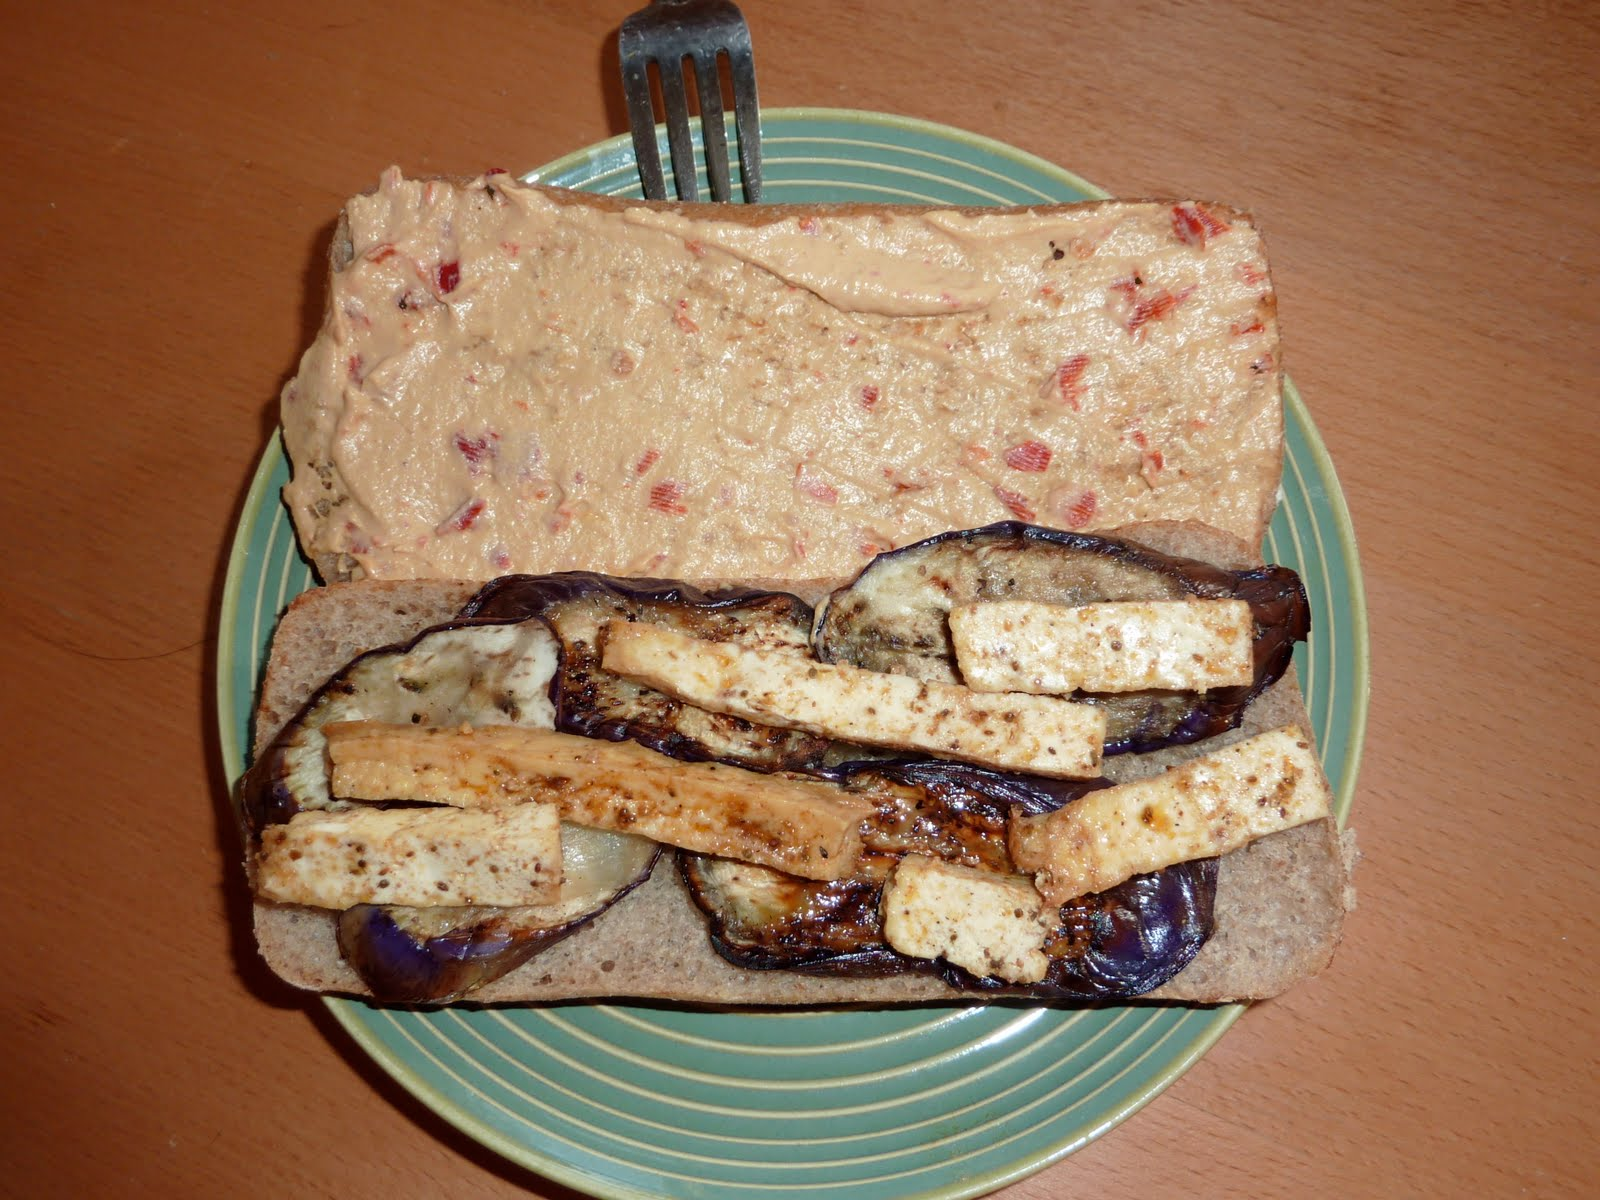 Look To Beauty: Tofu, Eggplant and Hummus sandwich